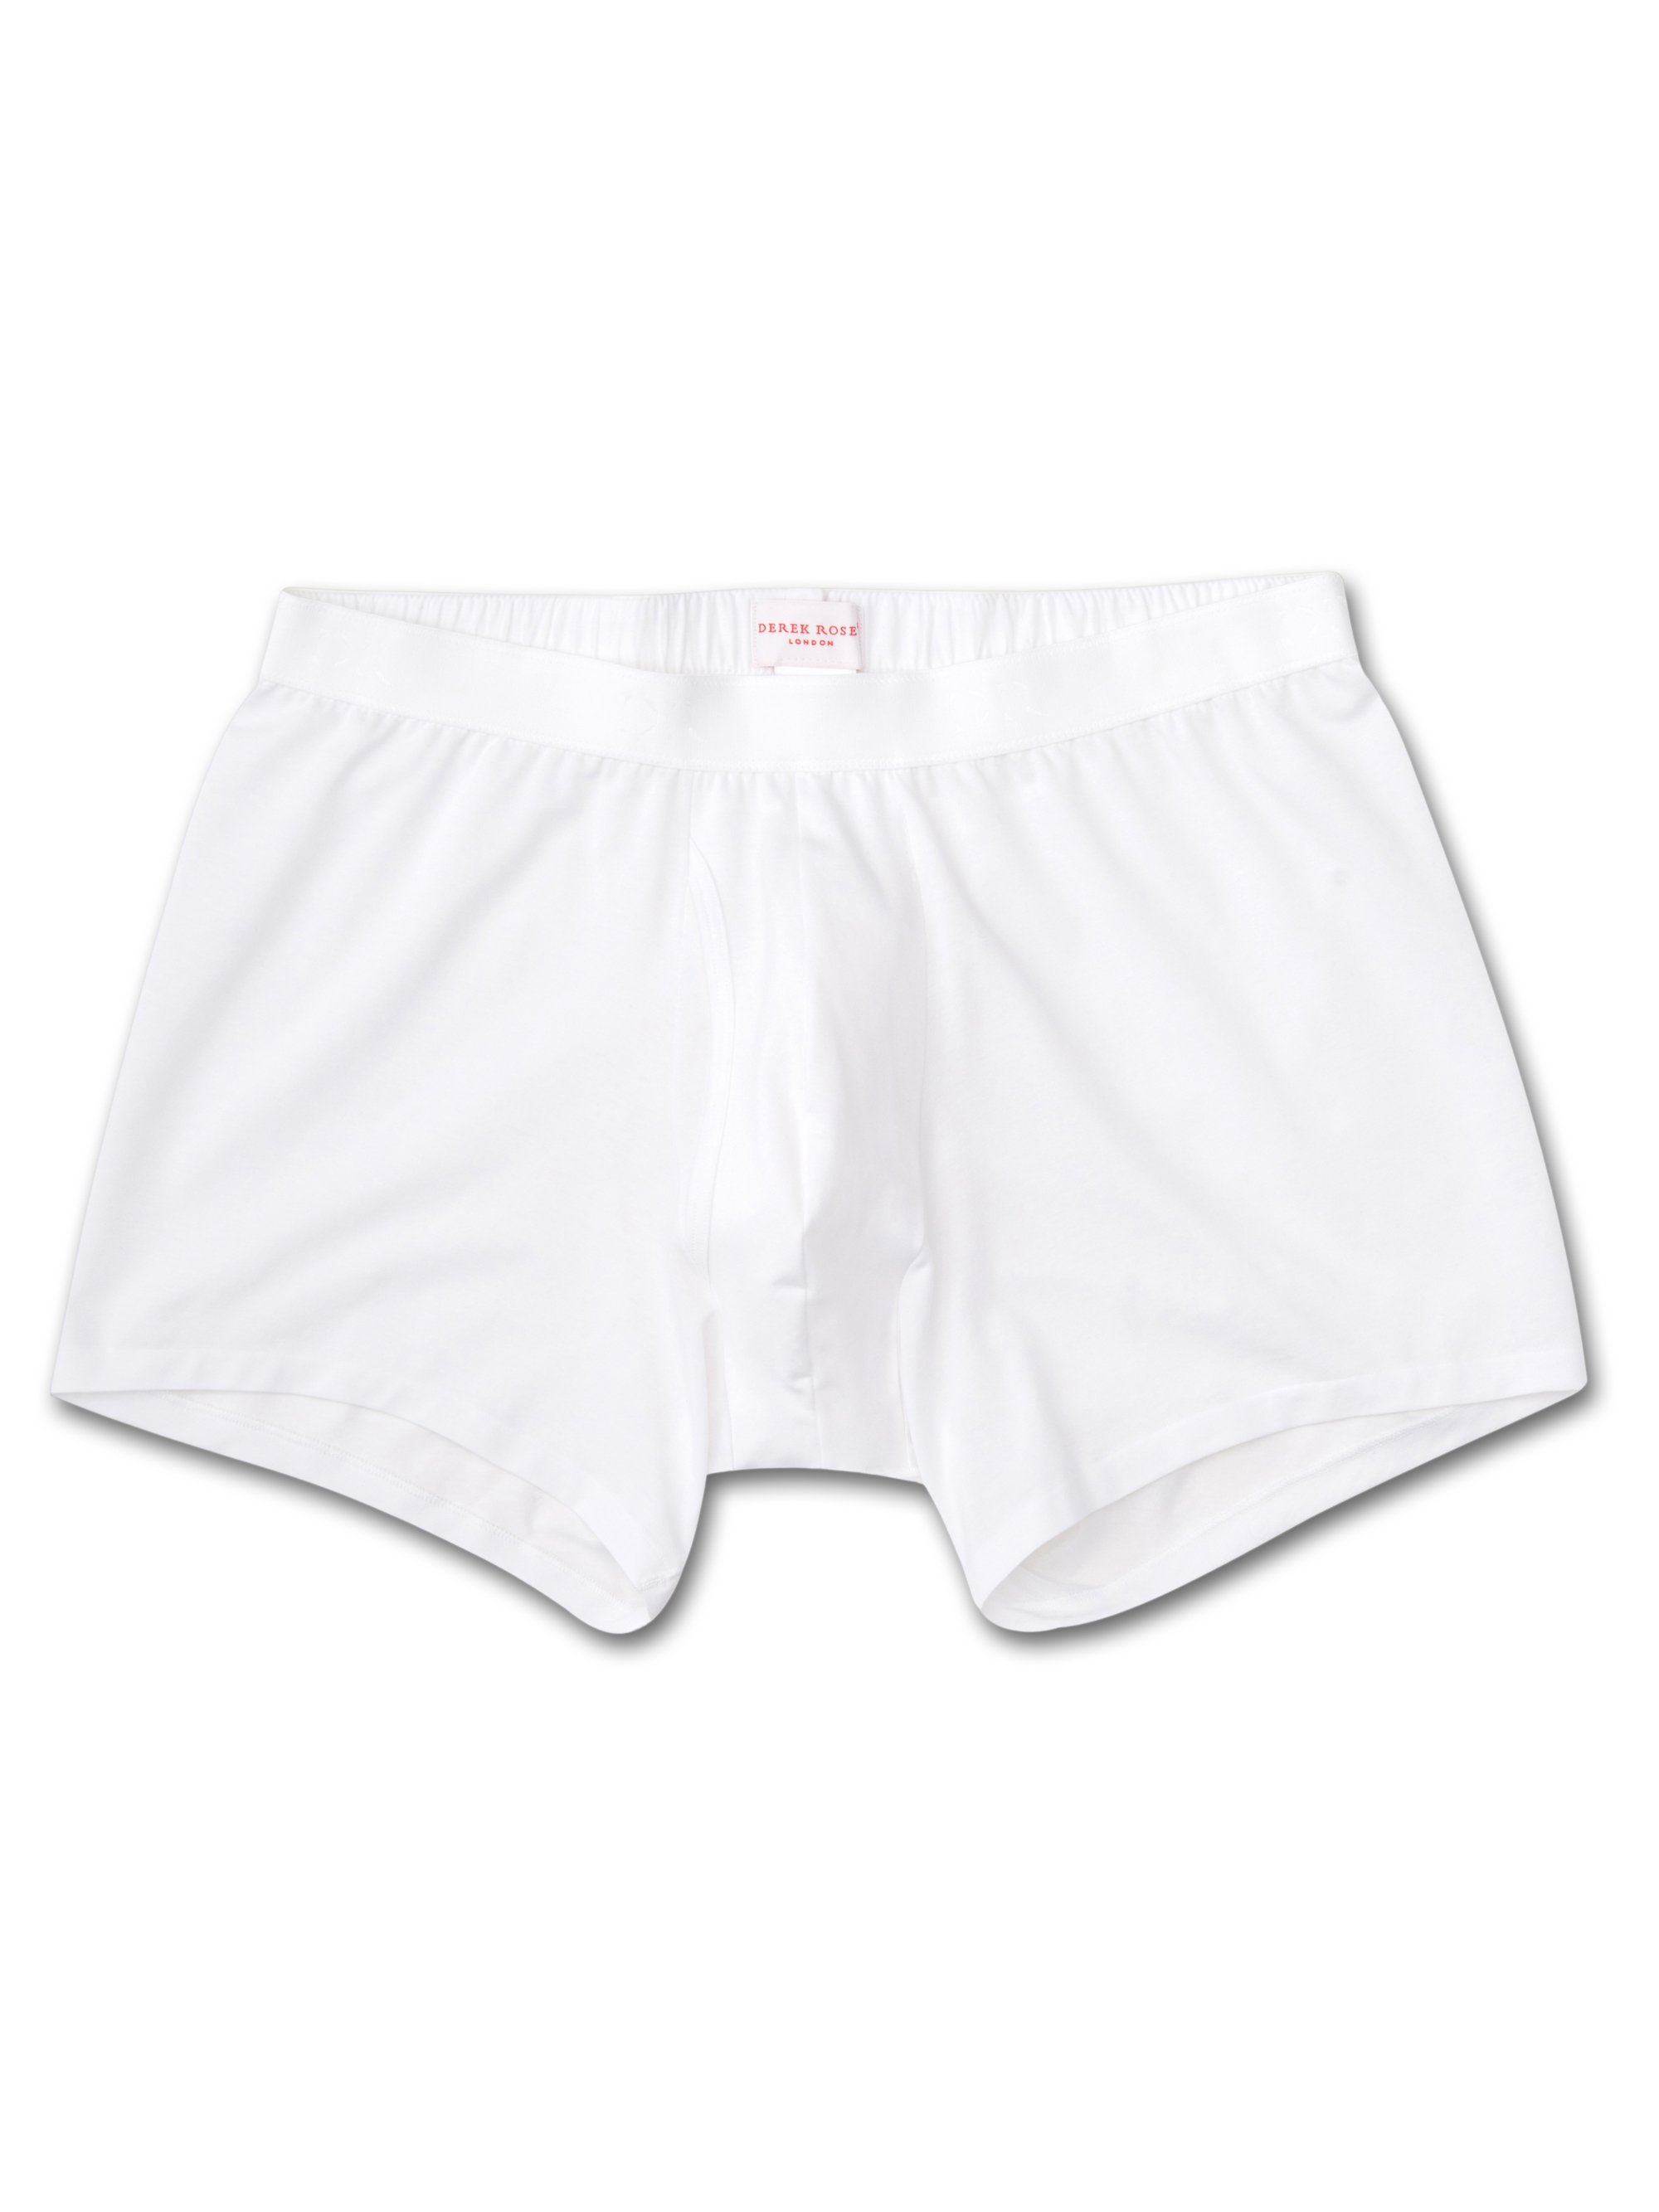 Men's Trunks Jack Pima Cotton Stretch White